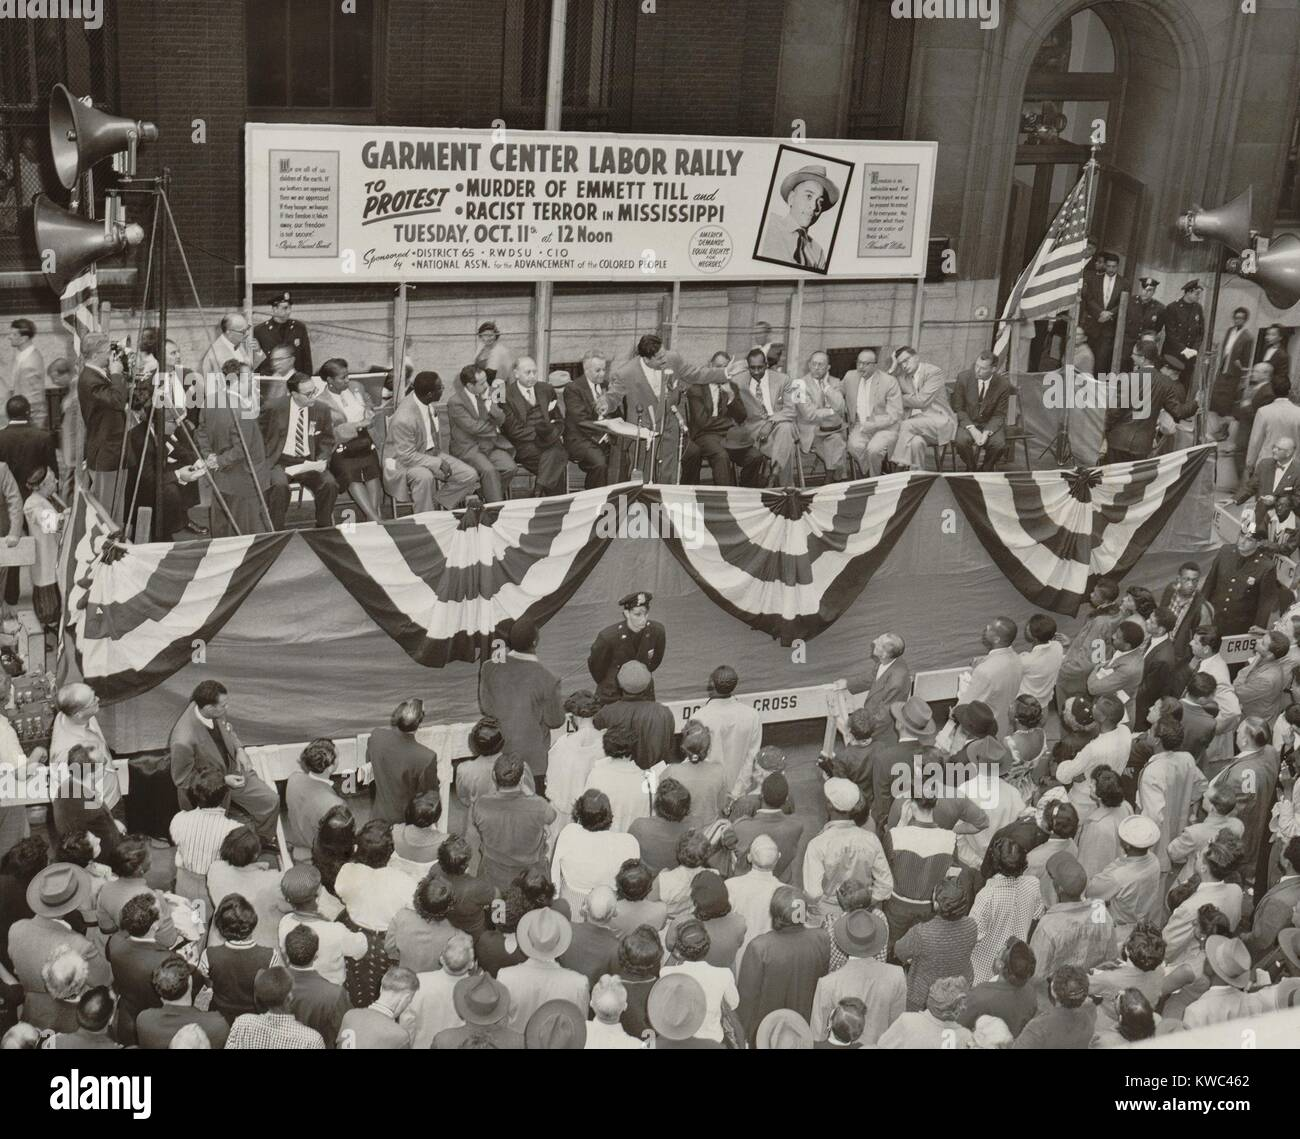 Protest against the murder of African American teenager, Emmett Till. Oct. 11, 1955. The New York City event was - Stock Image